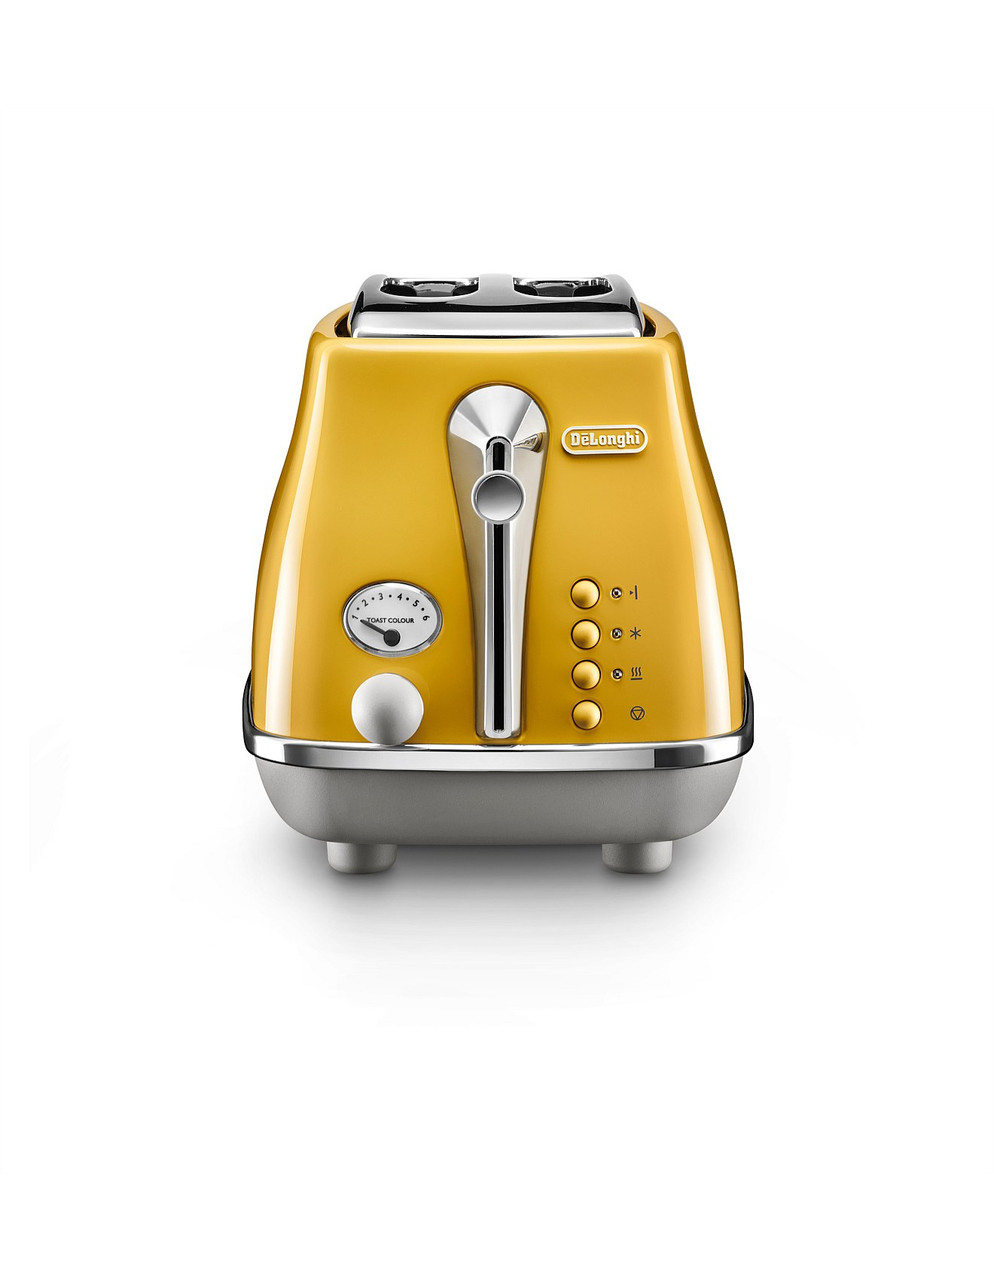 Delonghi CTOC2003Y KBOC2001Y Icona Capitals Toaster + Kettle PACK - New York Yellow